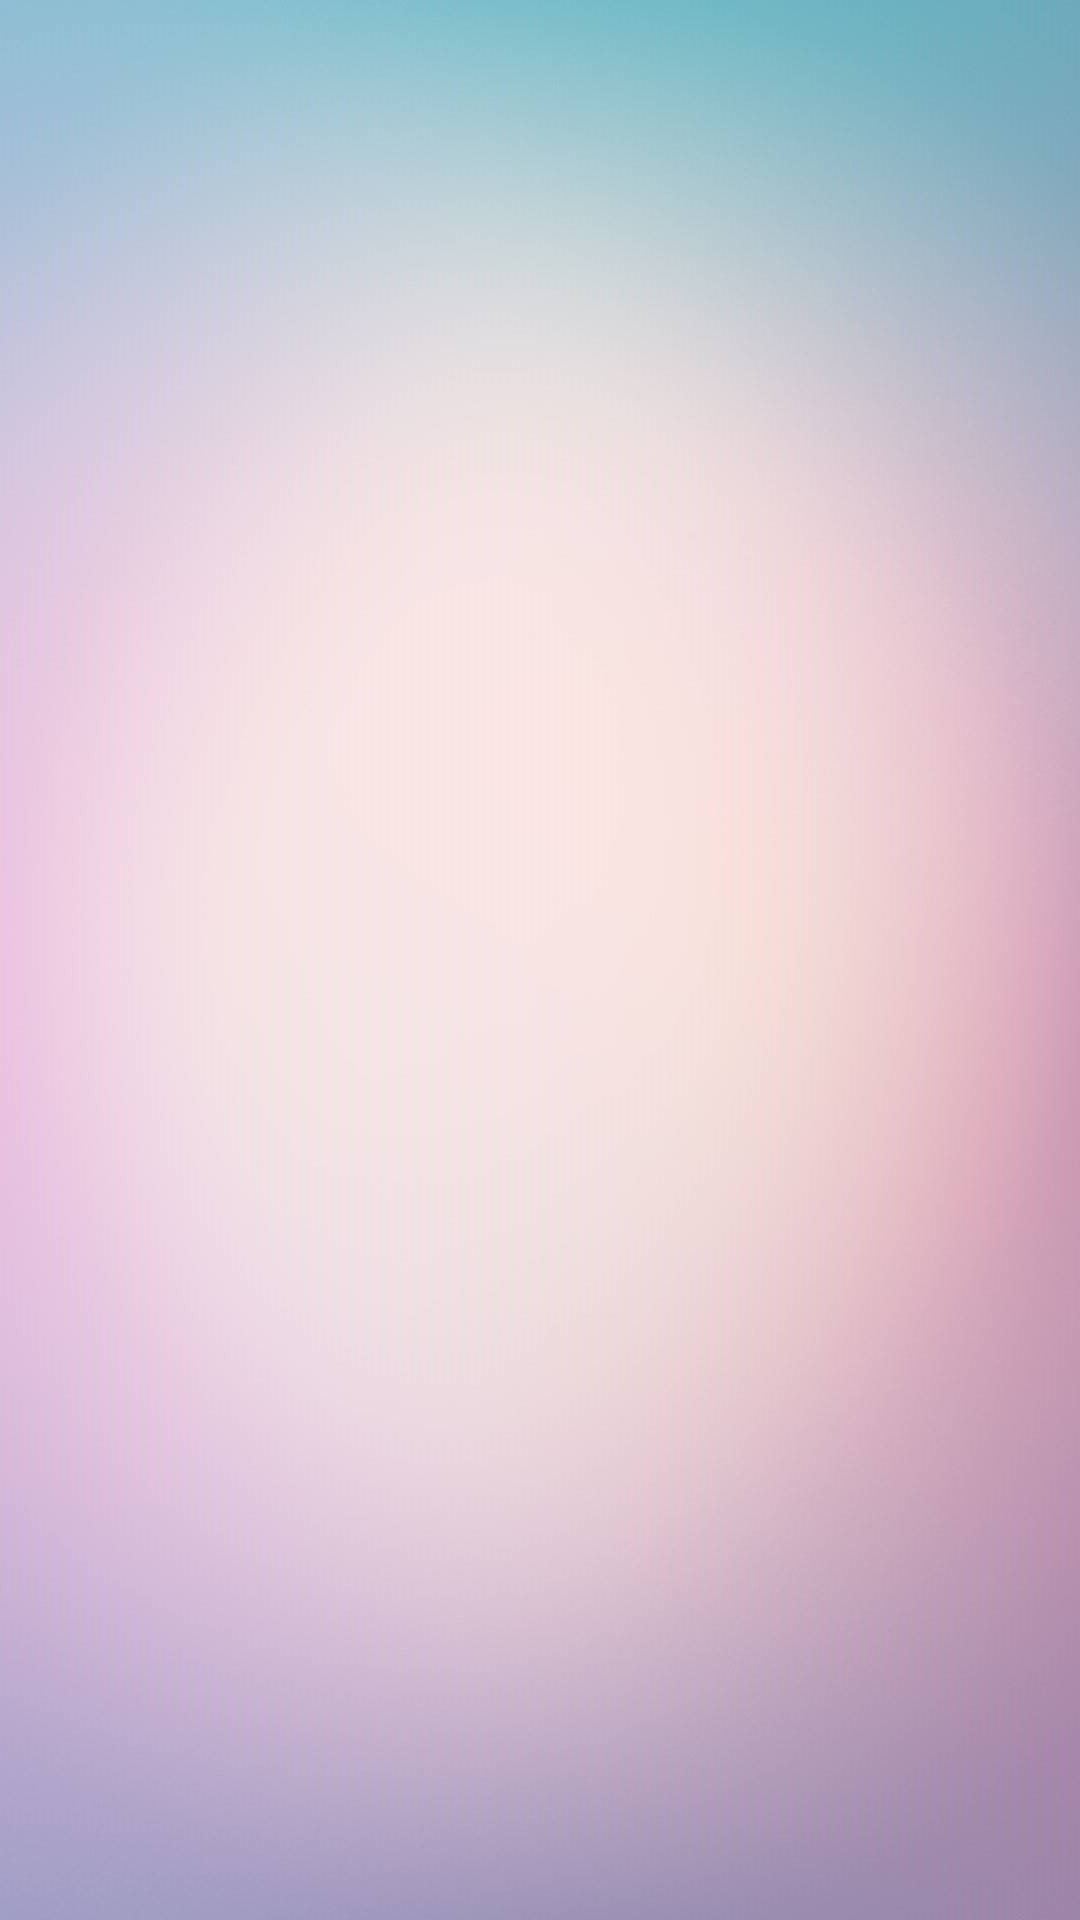 Calming-Blurred-Background-Calming-blurred-lights-and-gradients-for-iPhone-mobile-wallpaper-wp3803579